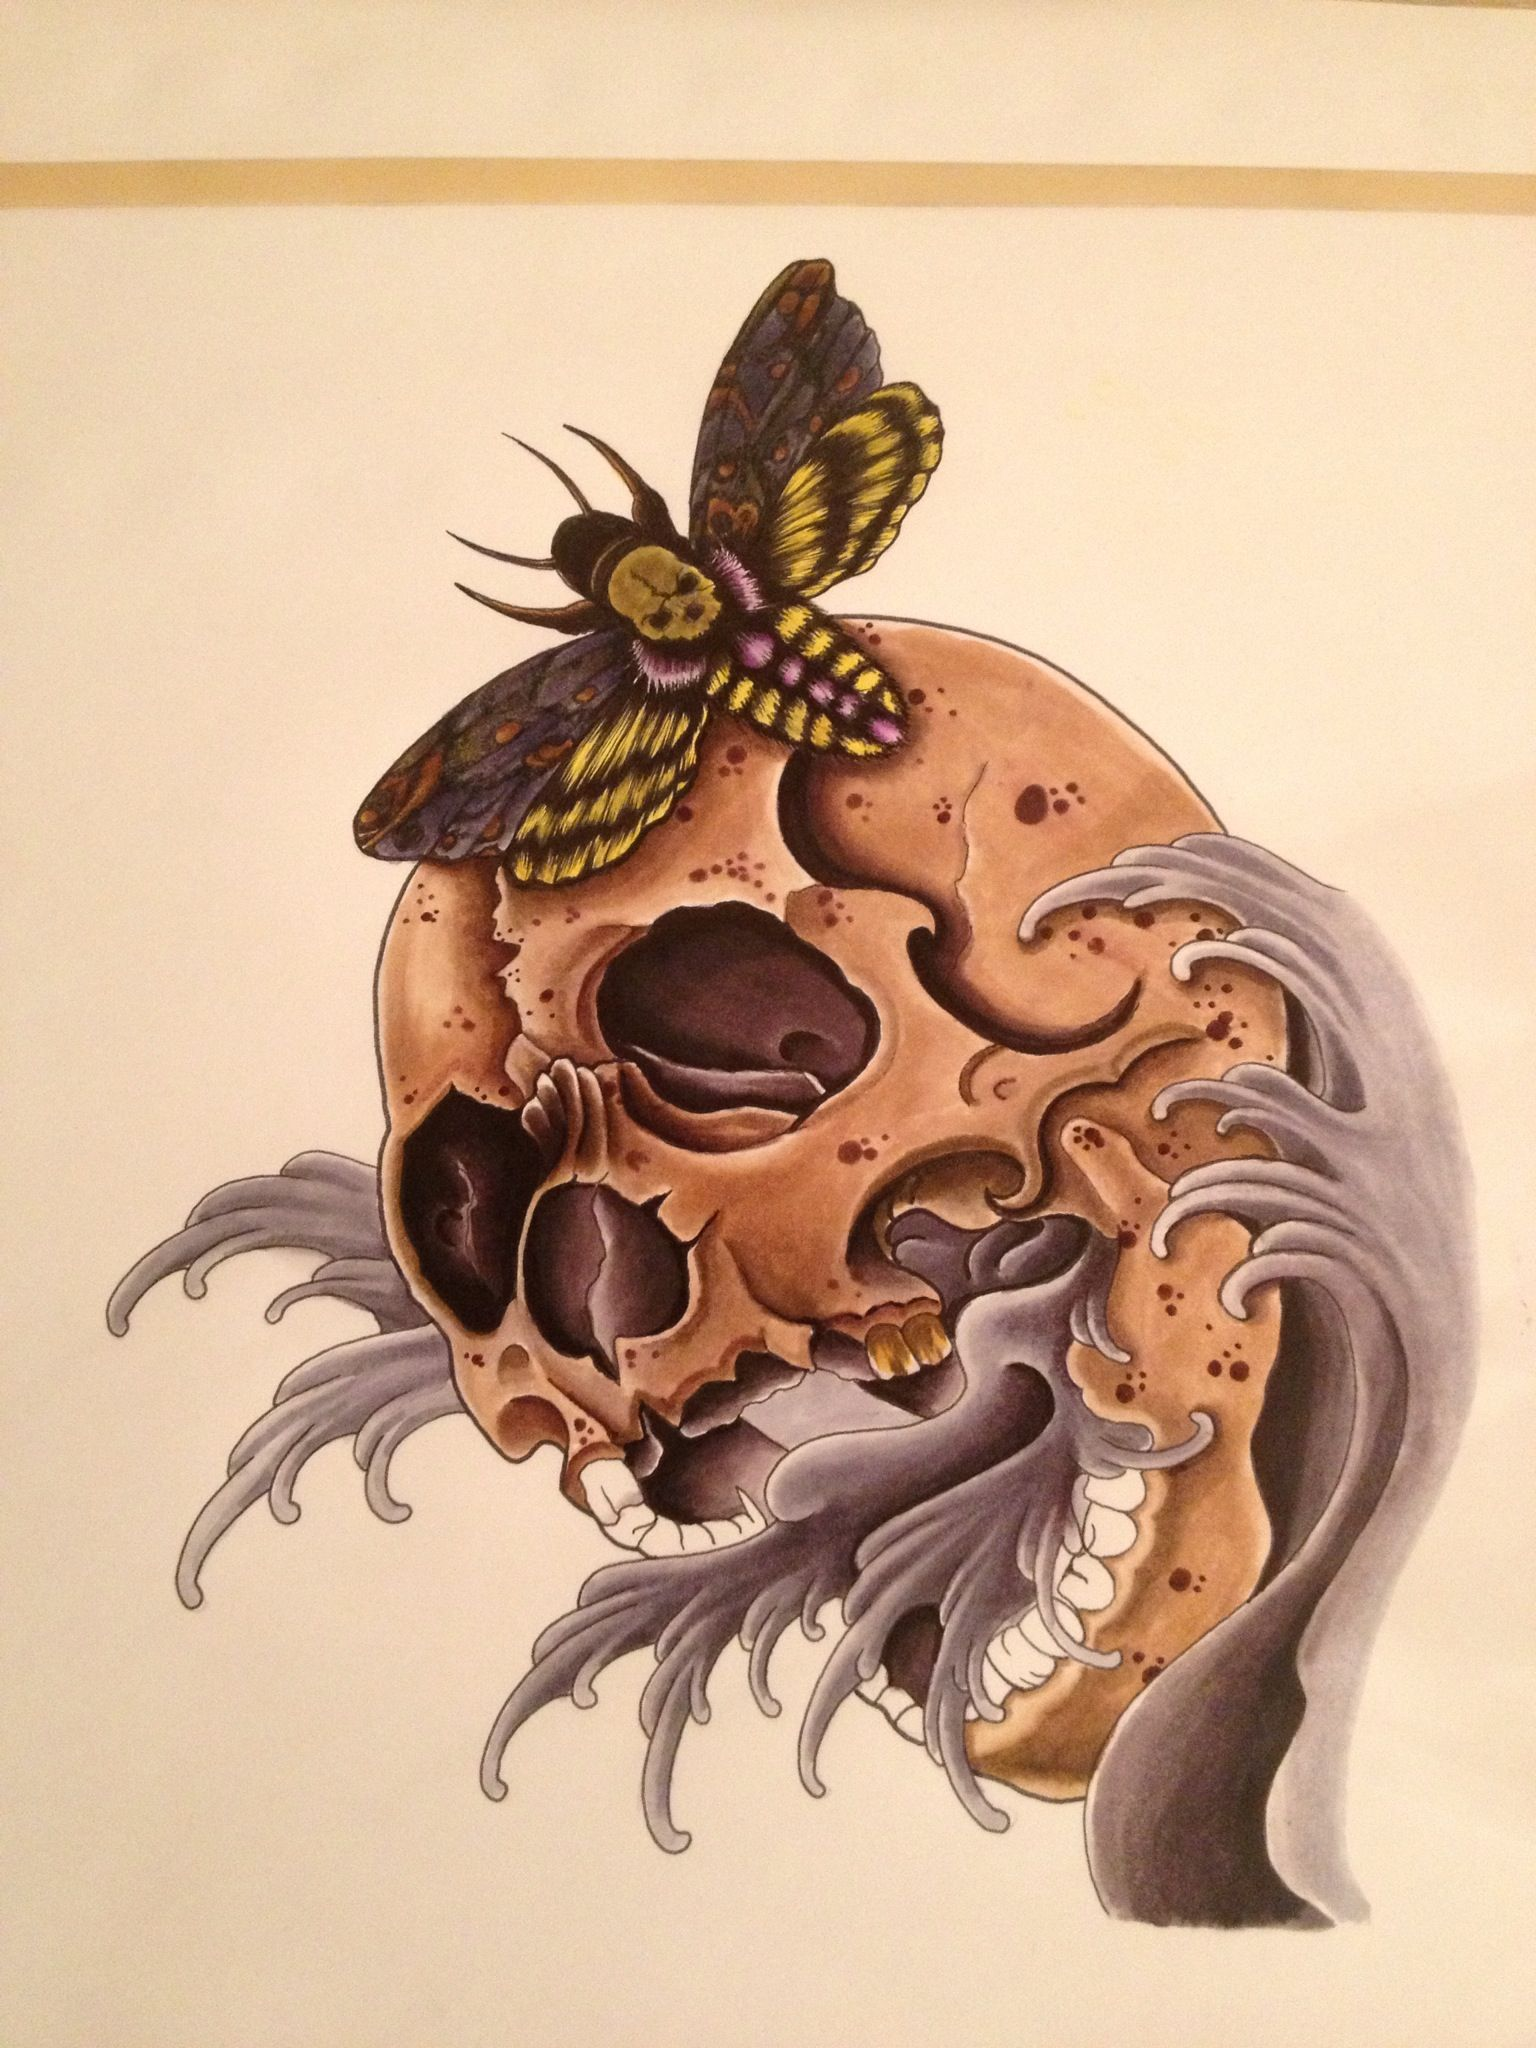 Art color markers - Deathhead Moth And Skull In Progress Using Prisma Color And Copic Art Markers By Bert Frink